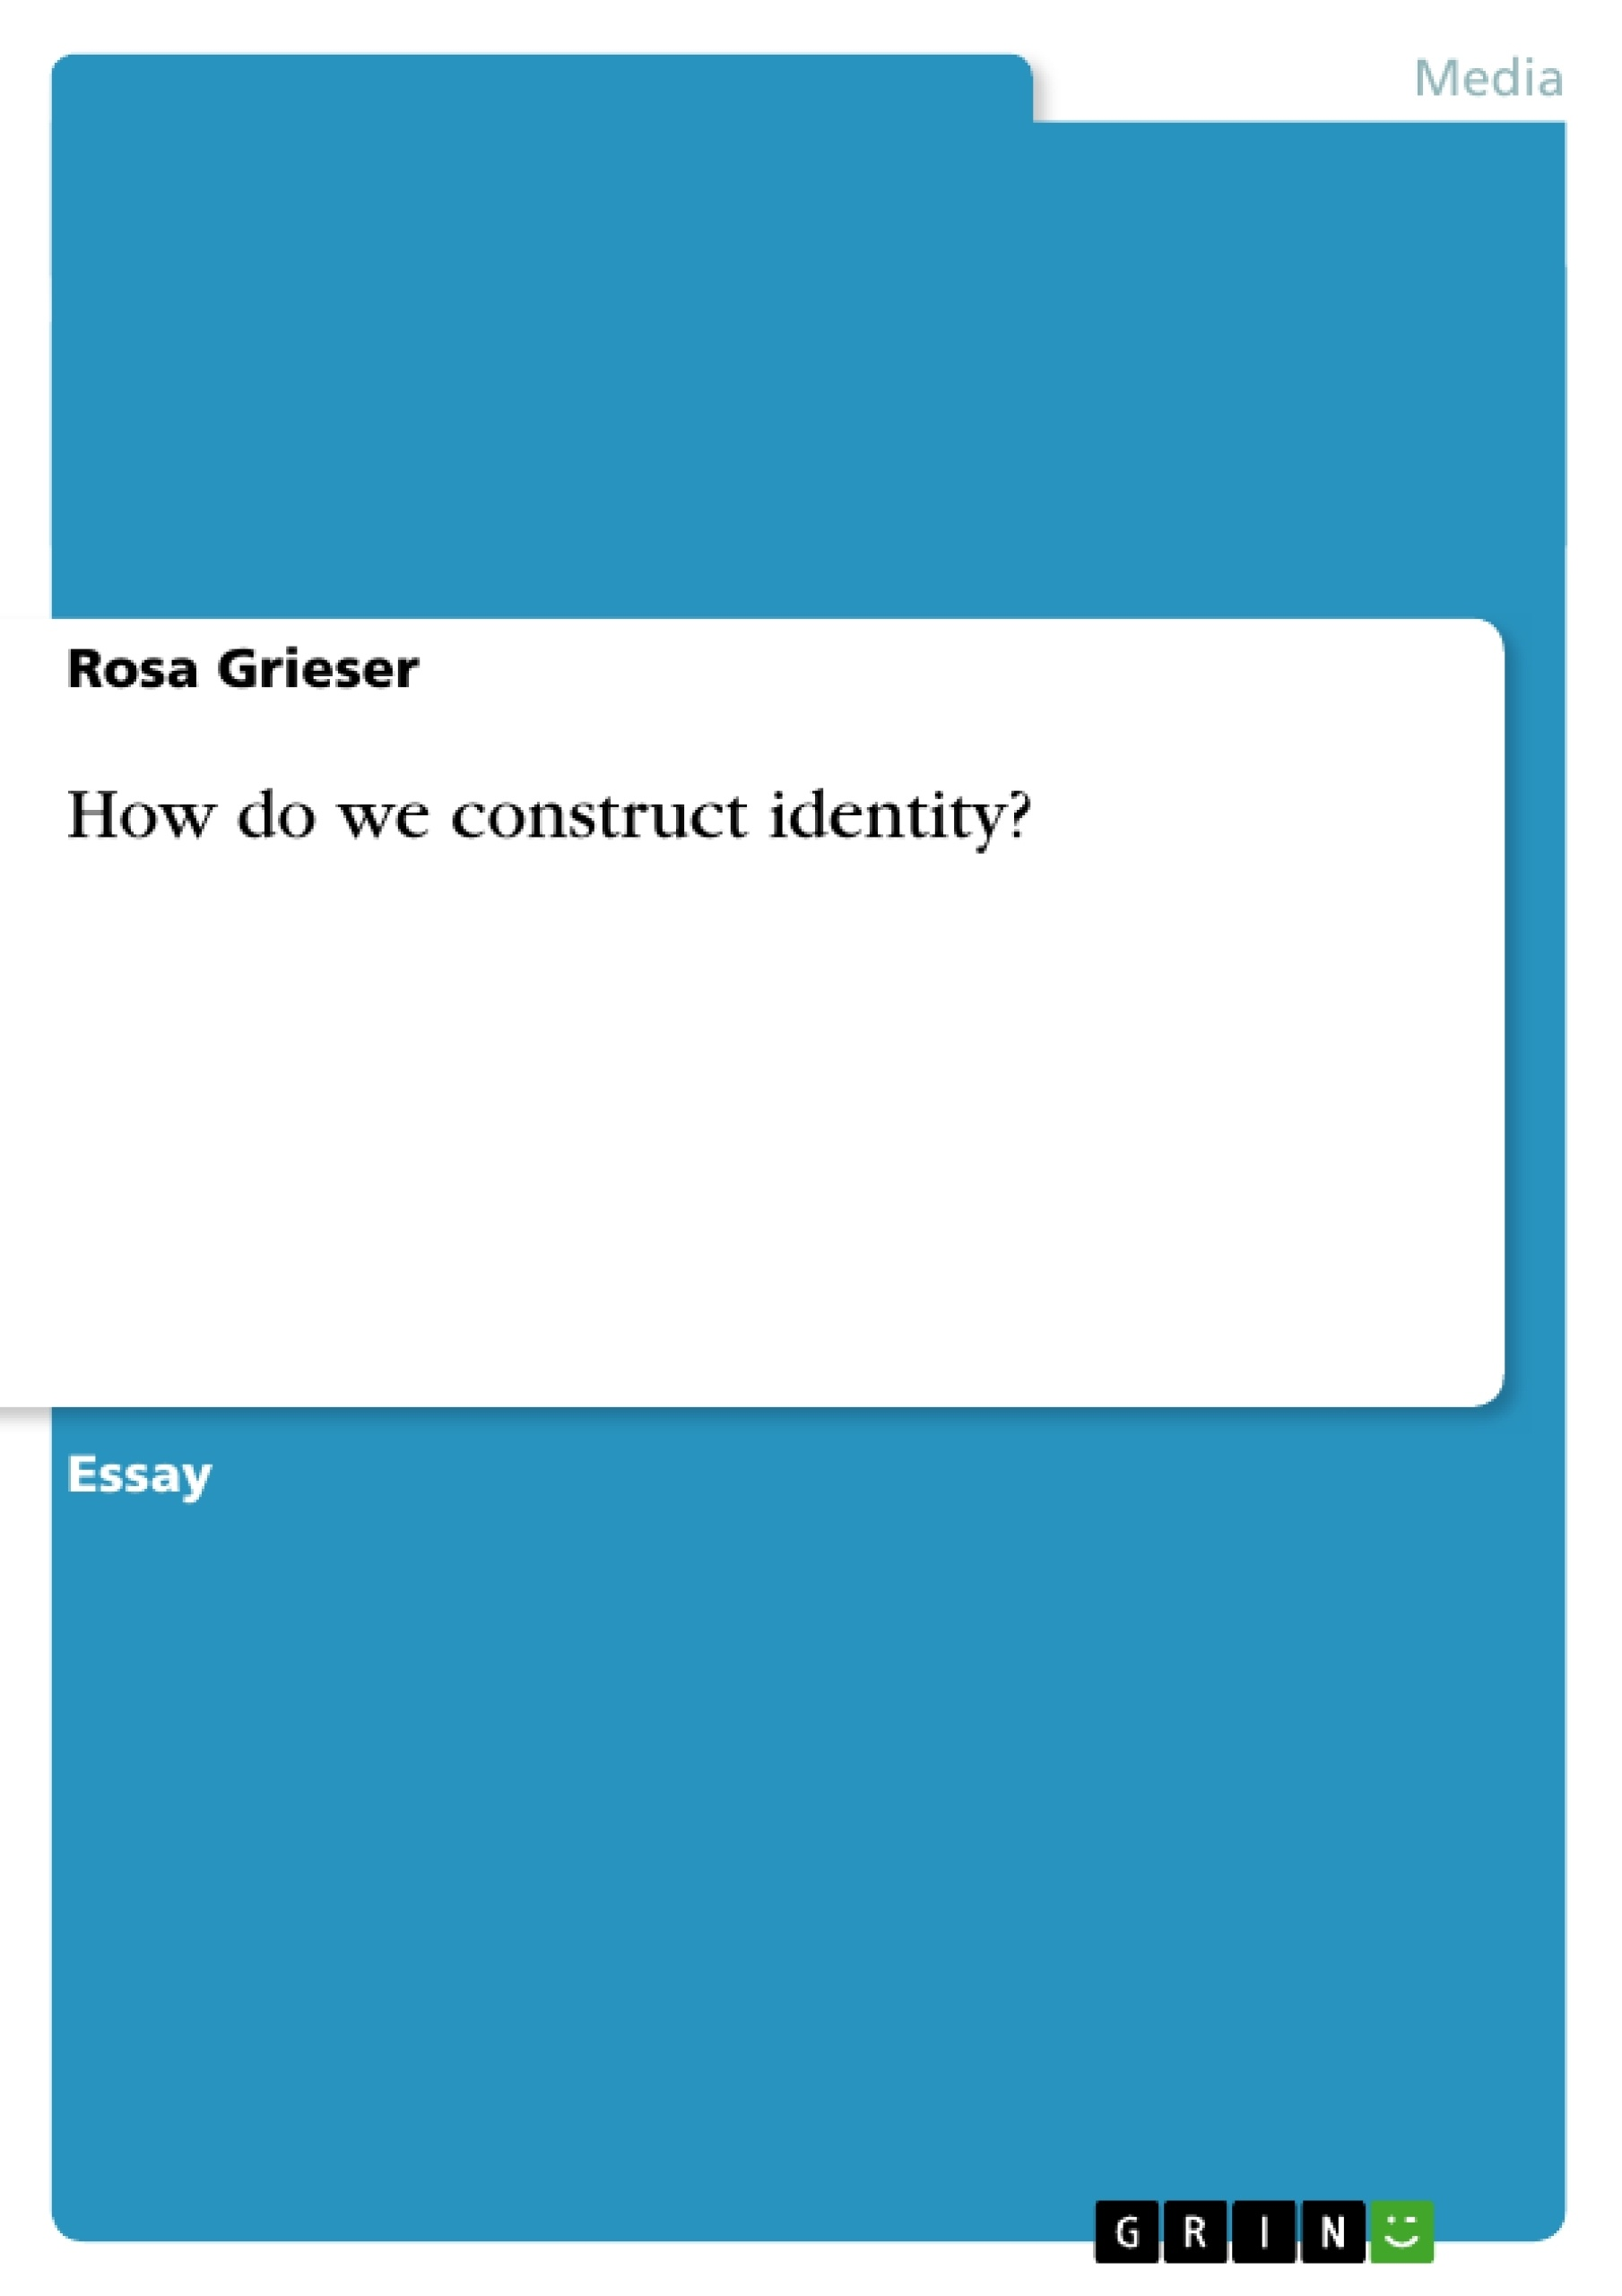 Title: How do we construct identity?